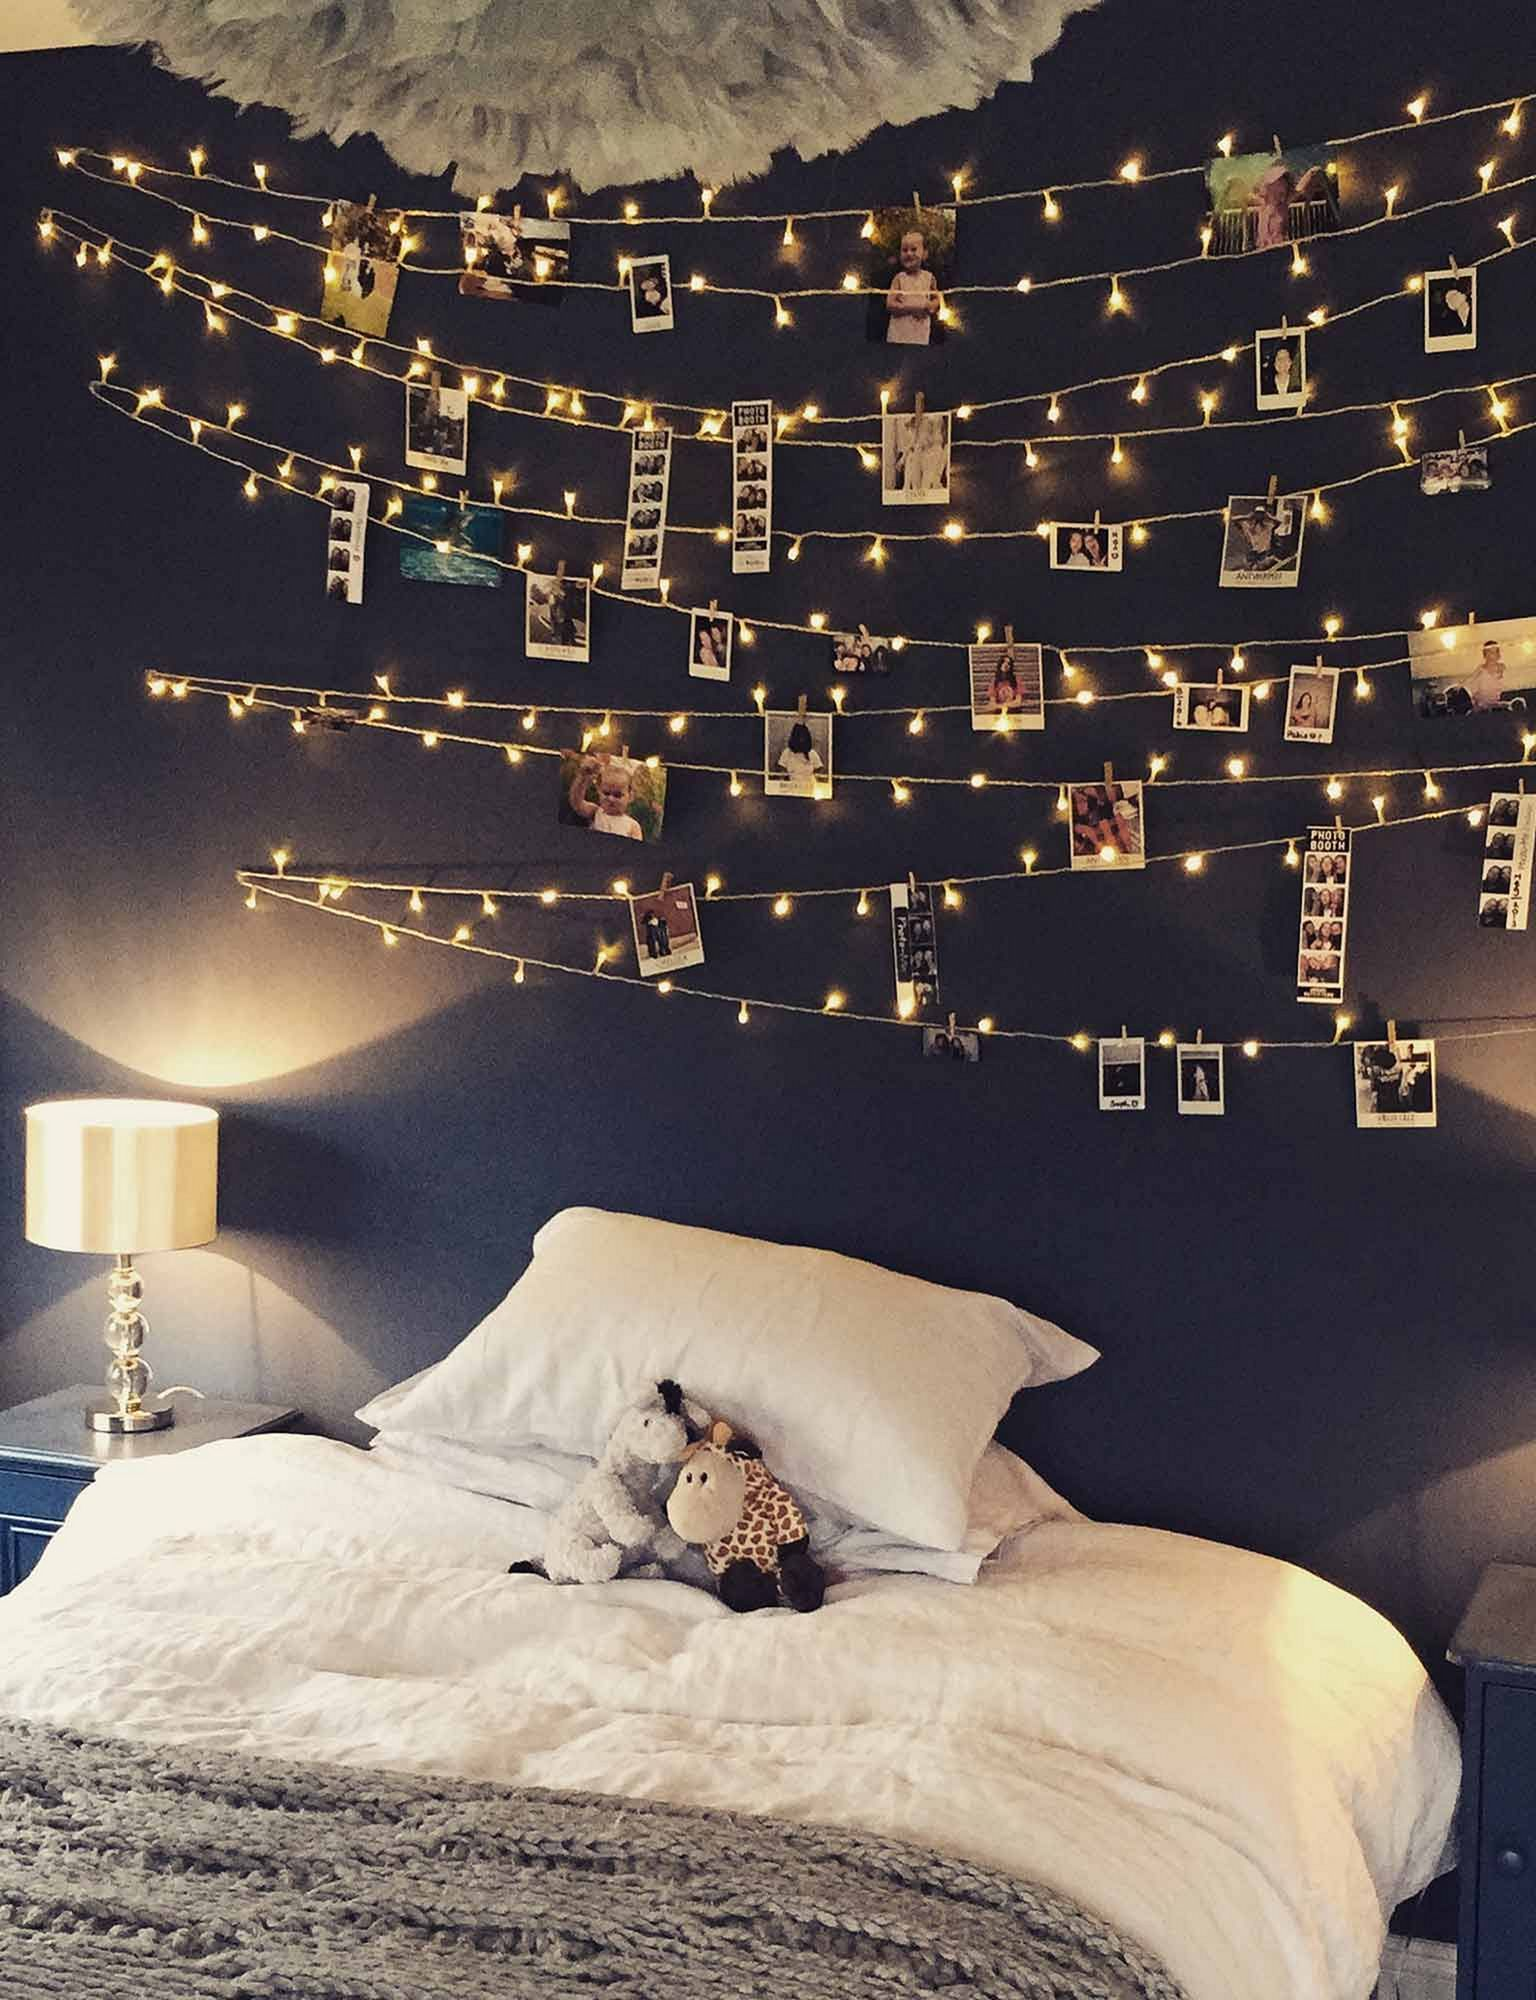 Cheap Bedroom Lighting Ideas 35 Awesome Romantic Bedroom With Fairy Light Ideas Bedroom